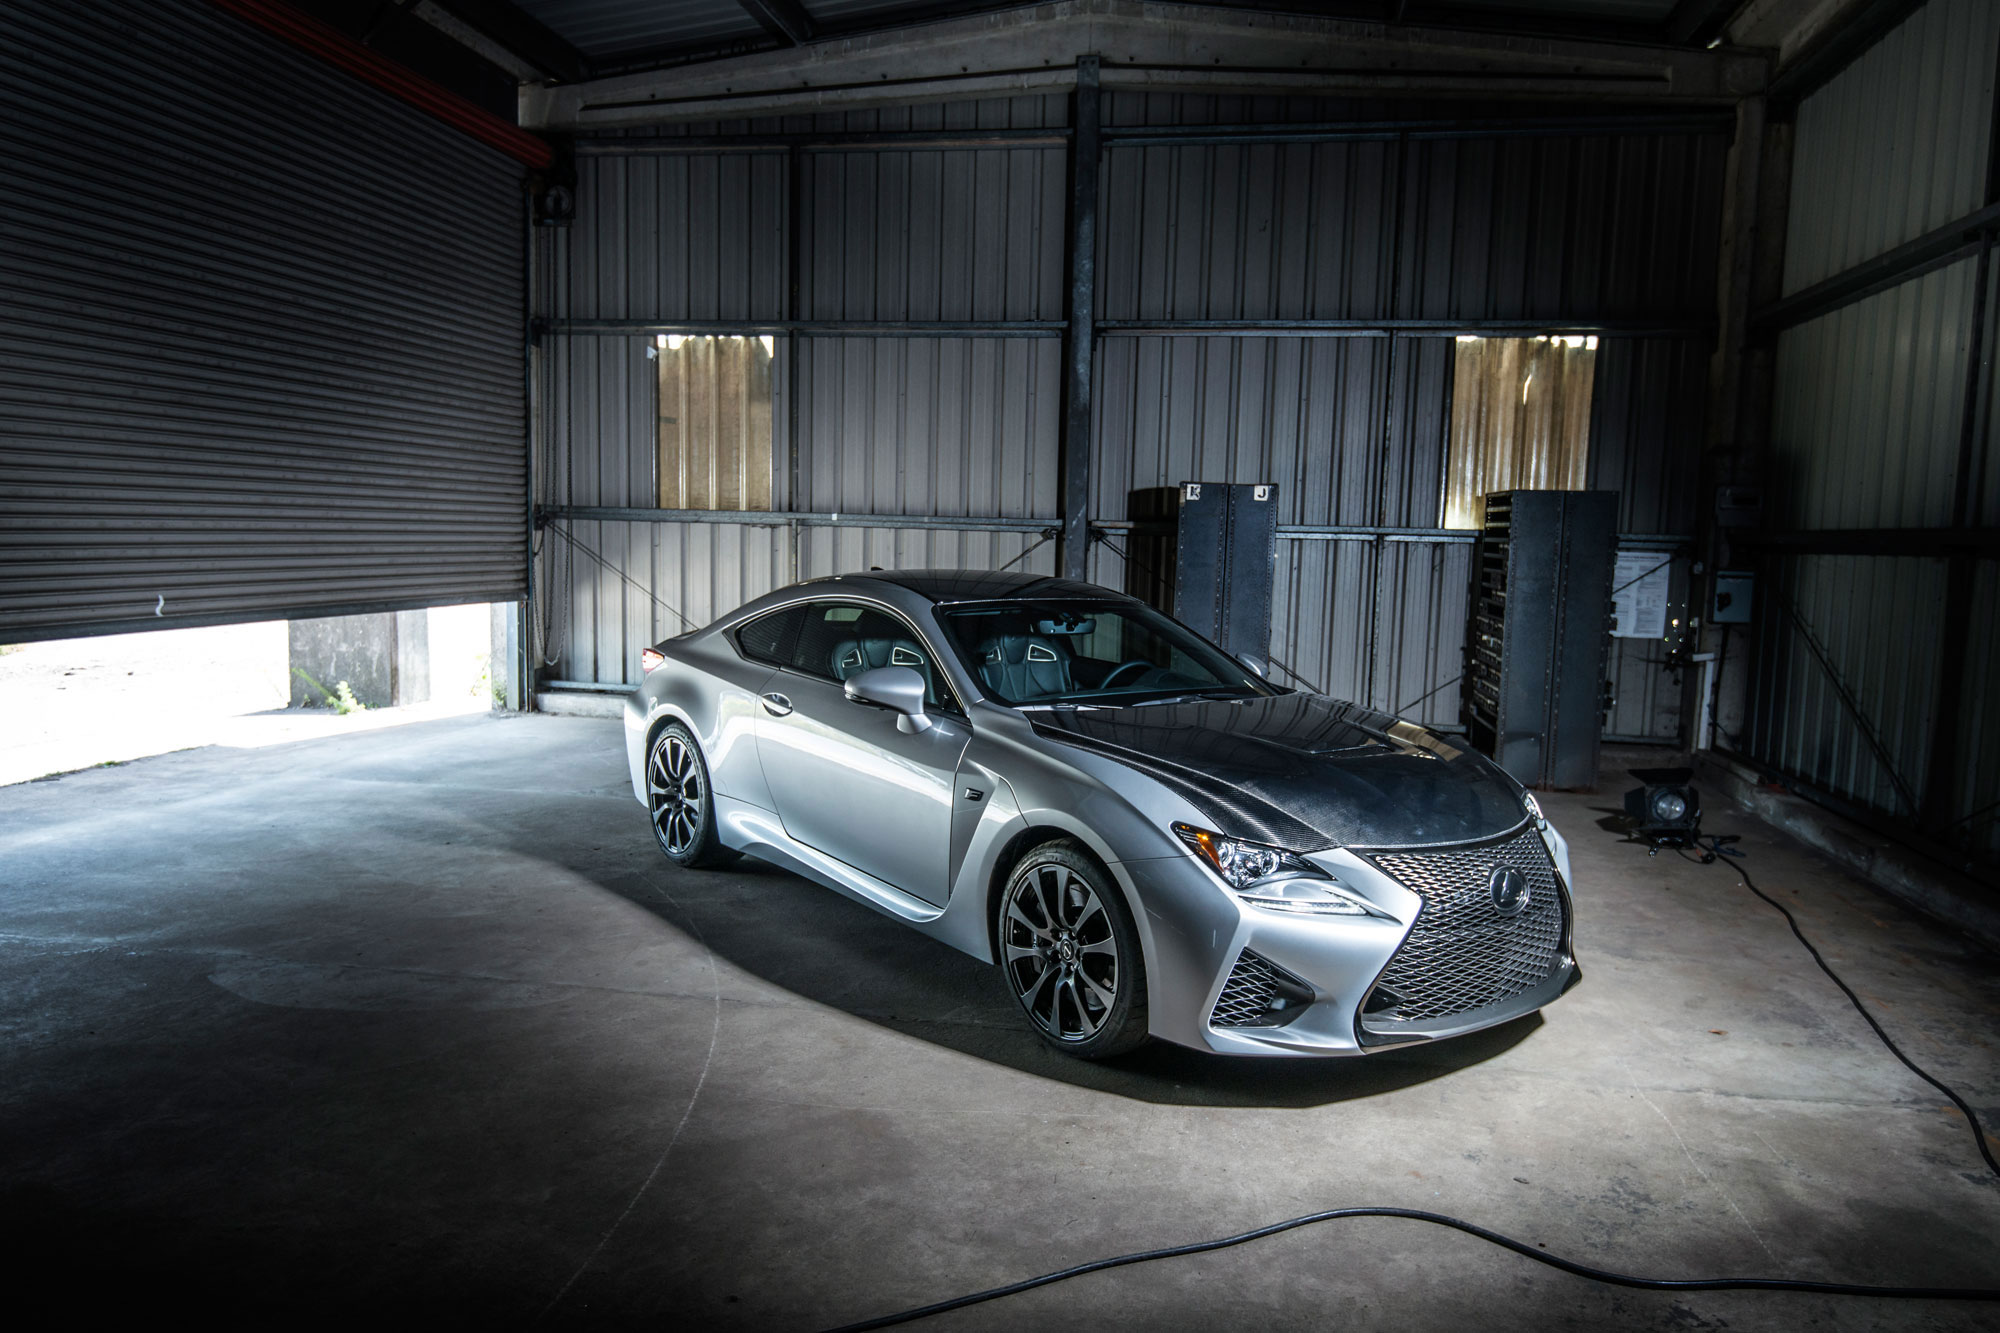 2018 lexus rcf. fine 2018 an error occurred intended 2018 lexus rcf